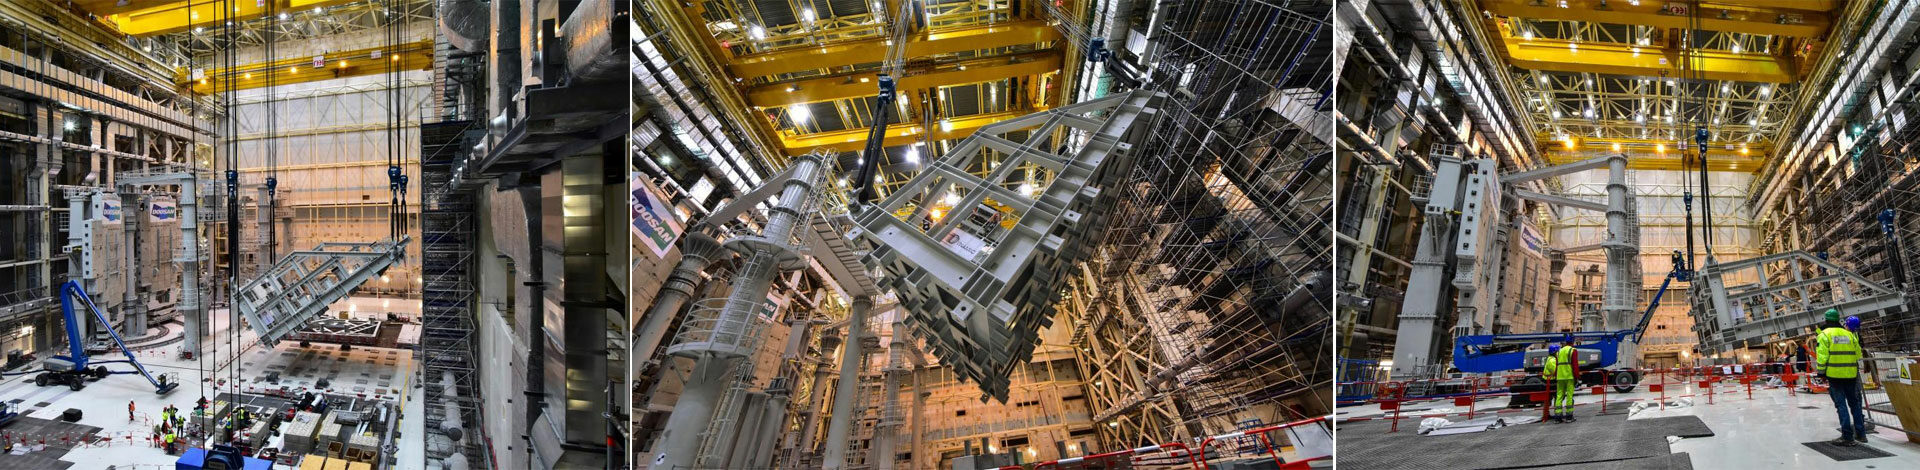 iter nuclear reel